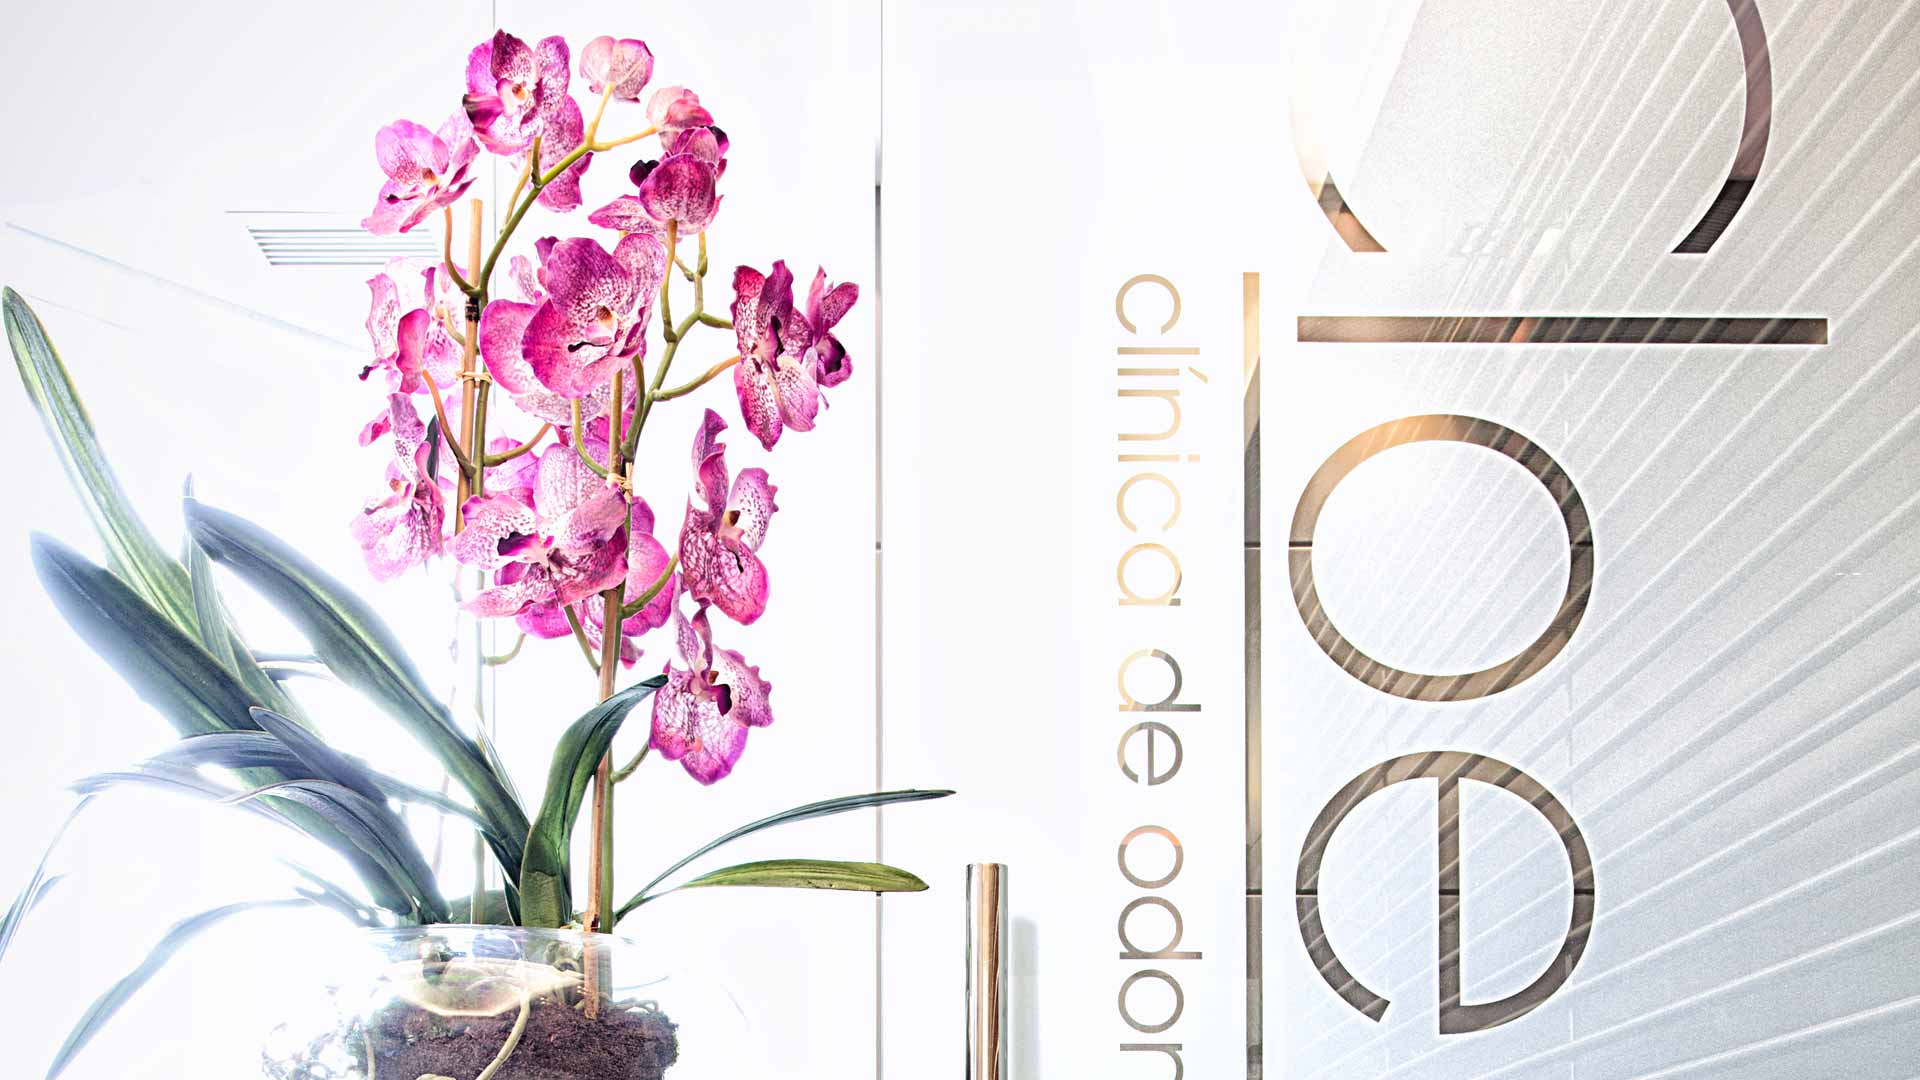 A plant with pink flowers stands next to a glass door in Clinica Cloe dental clinic